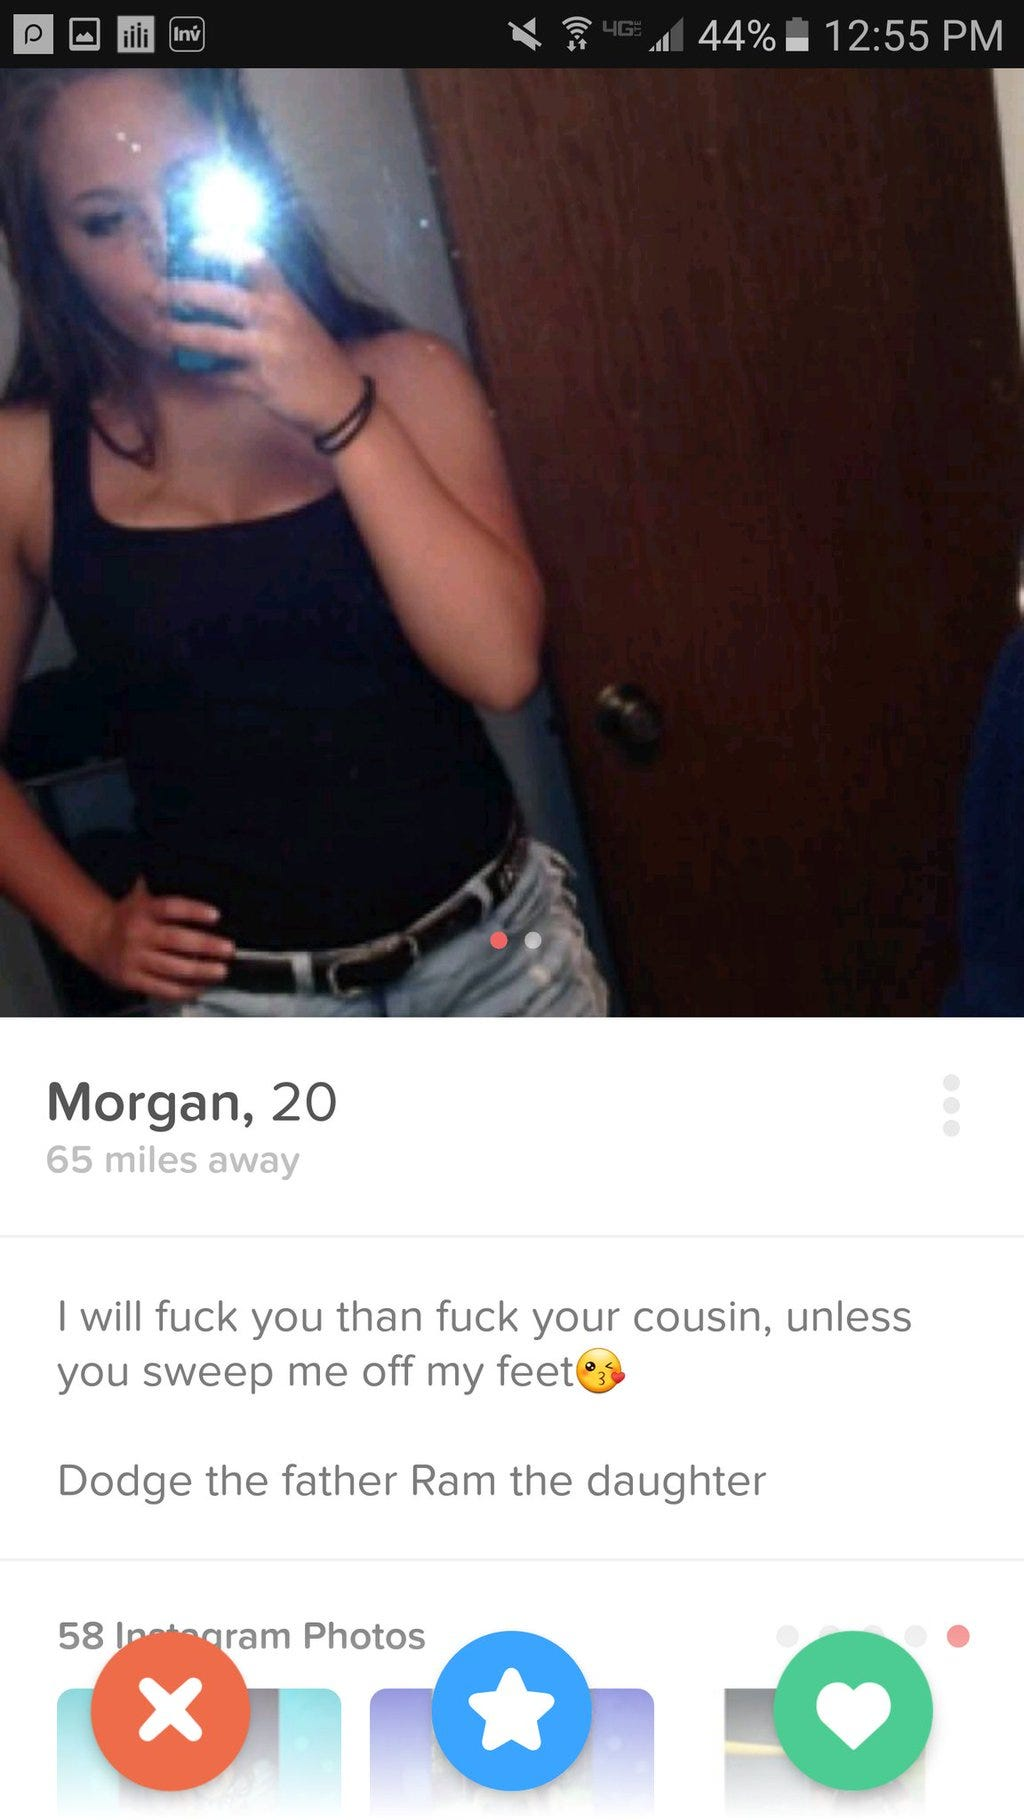 Online Dating: Match Me If You Can